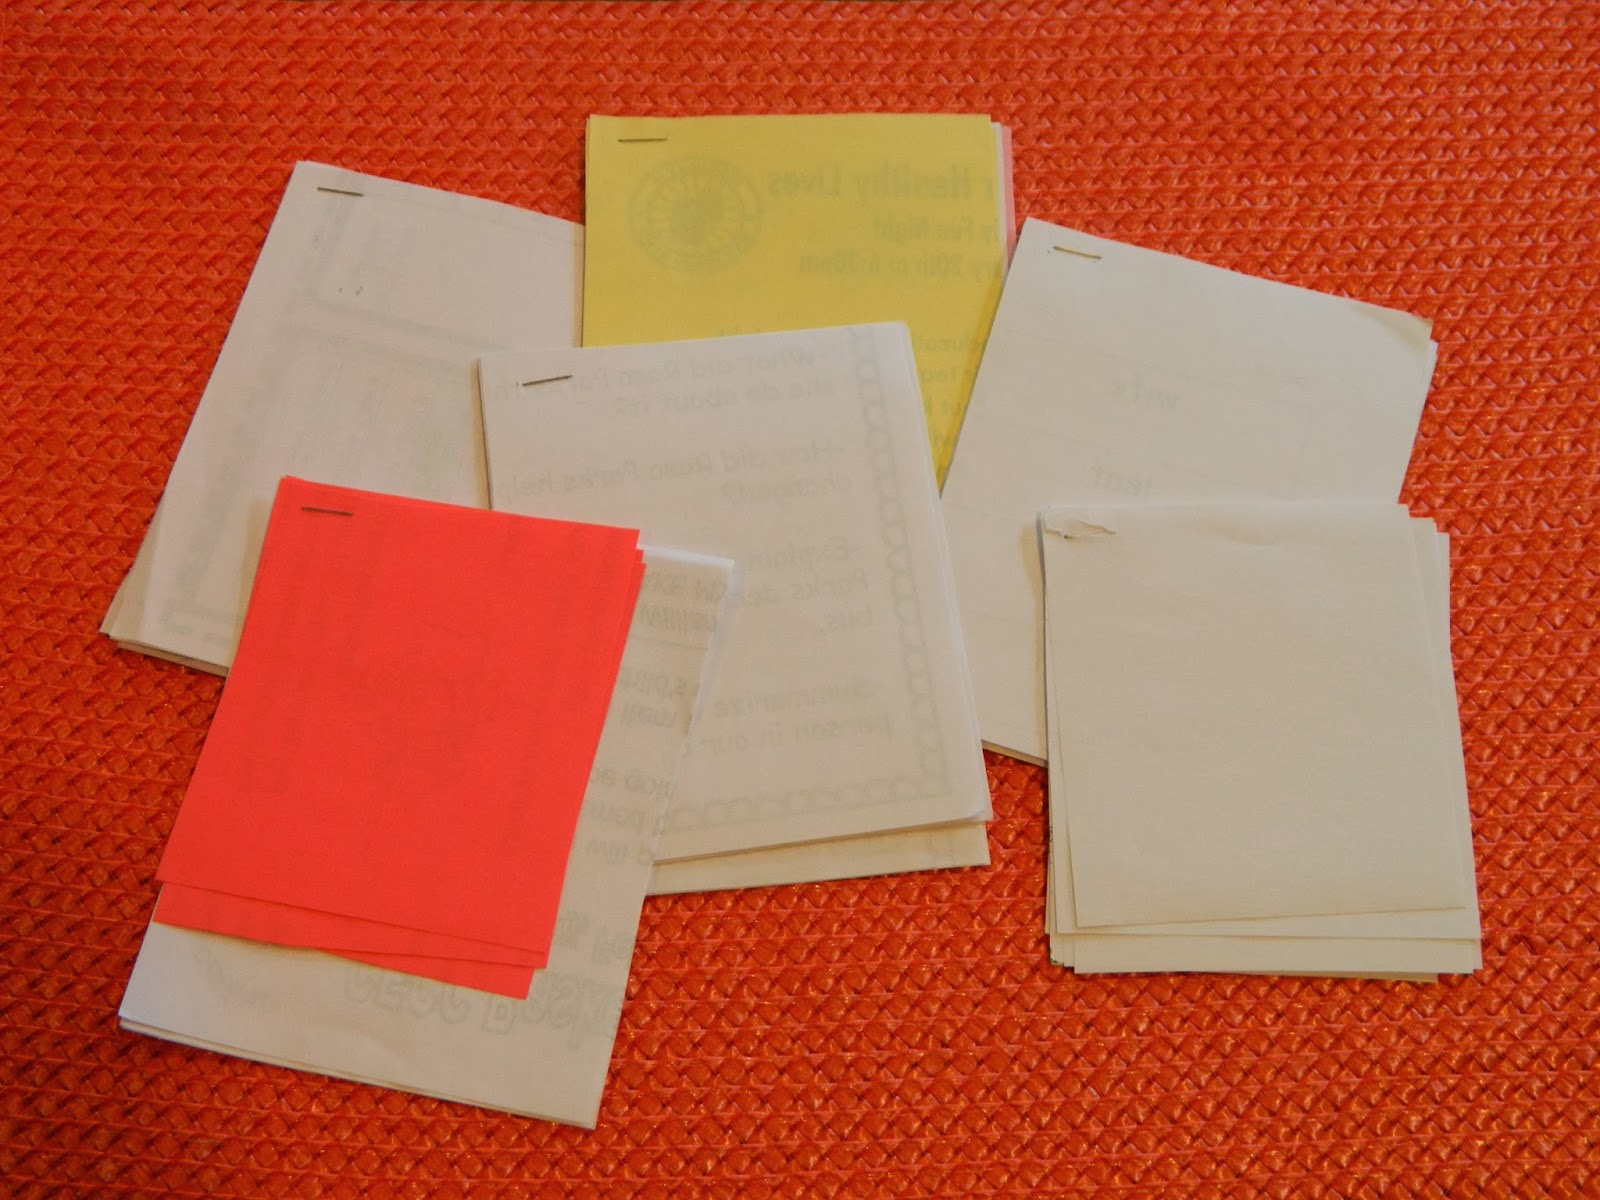 make your own note tablets, paper clutter, reuse paper